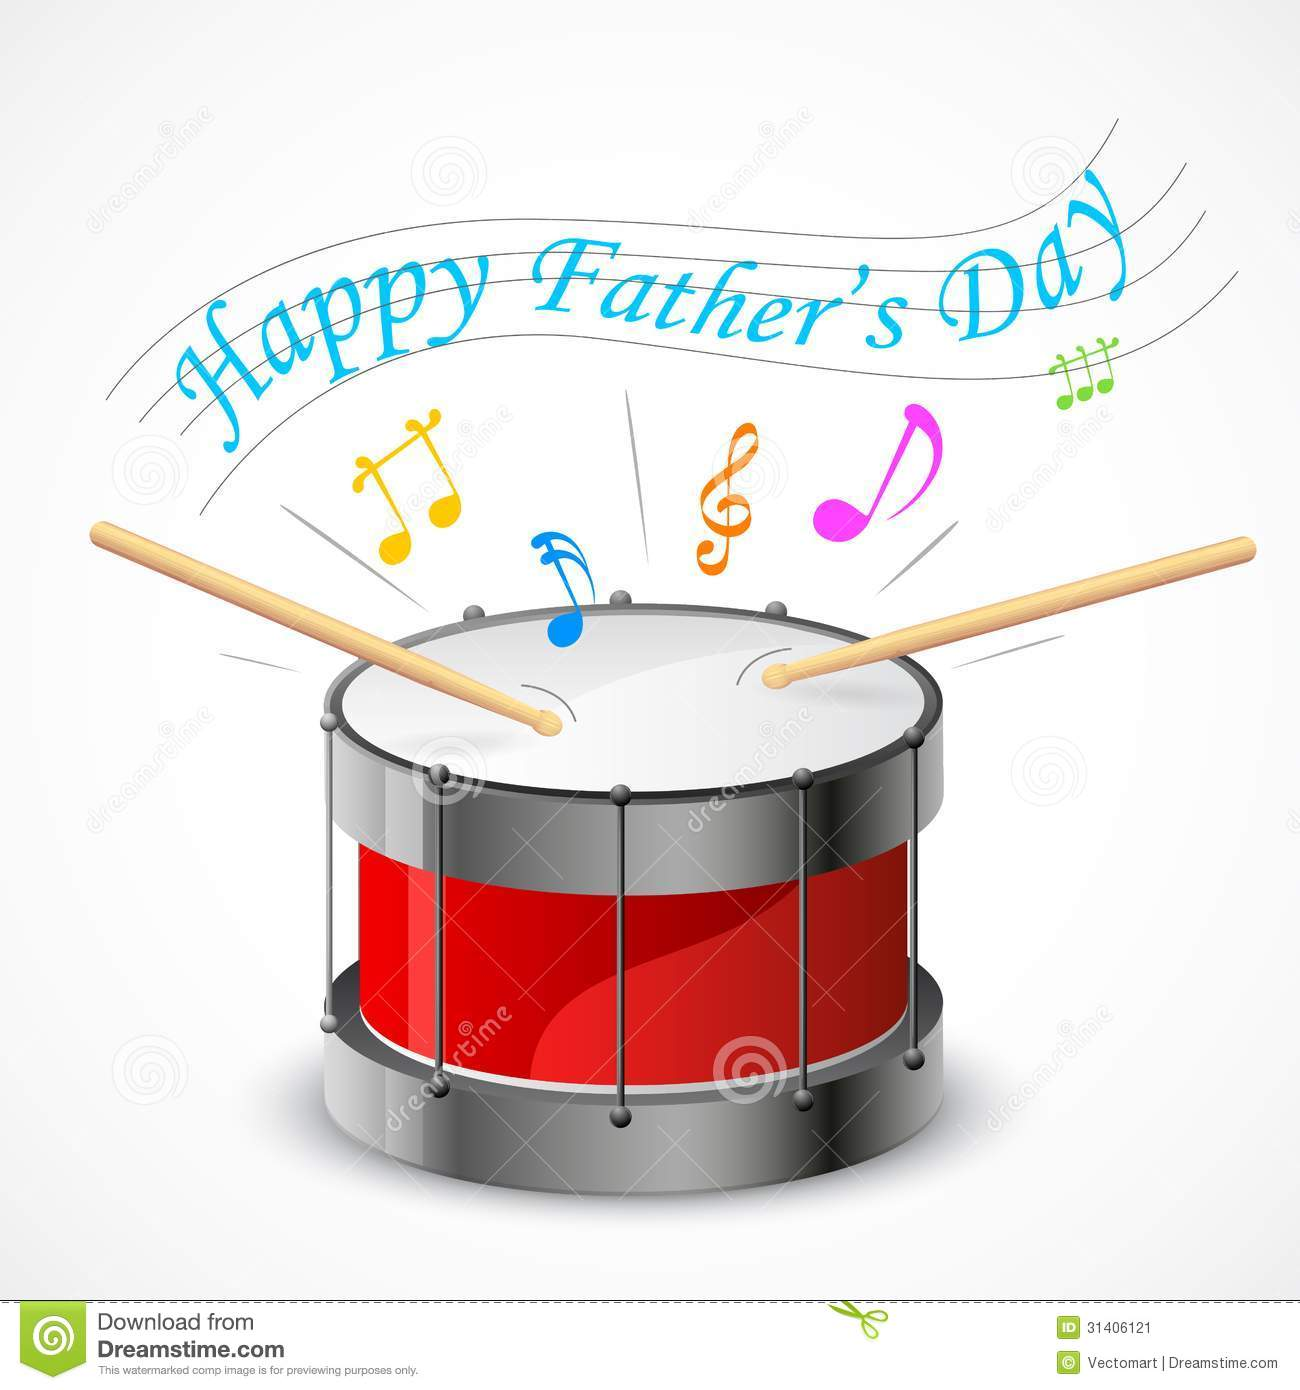 Happy Father's Day Stock Image - Image: 31406121